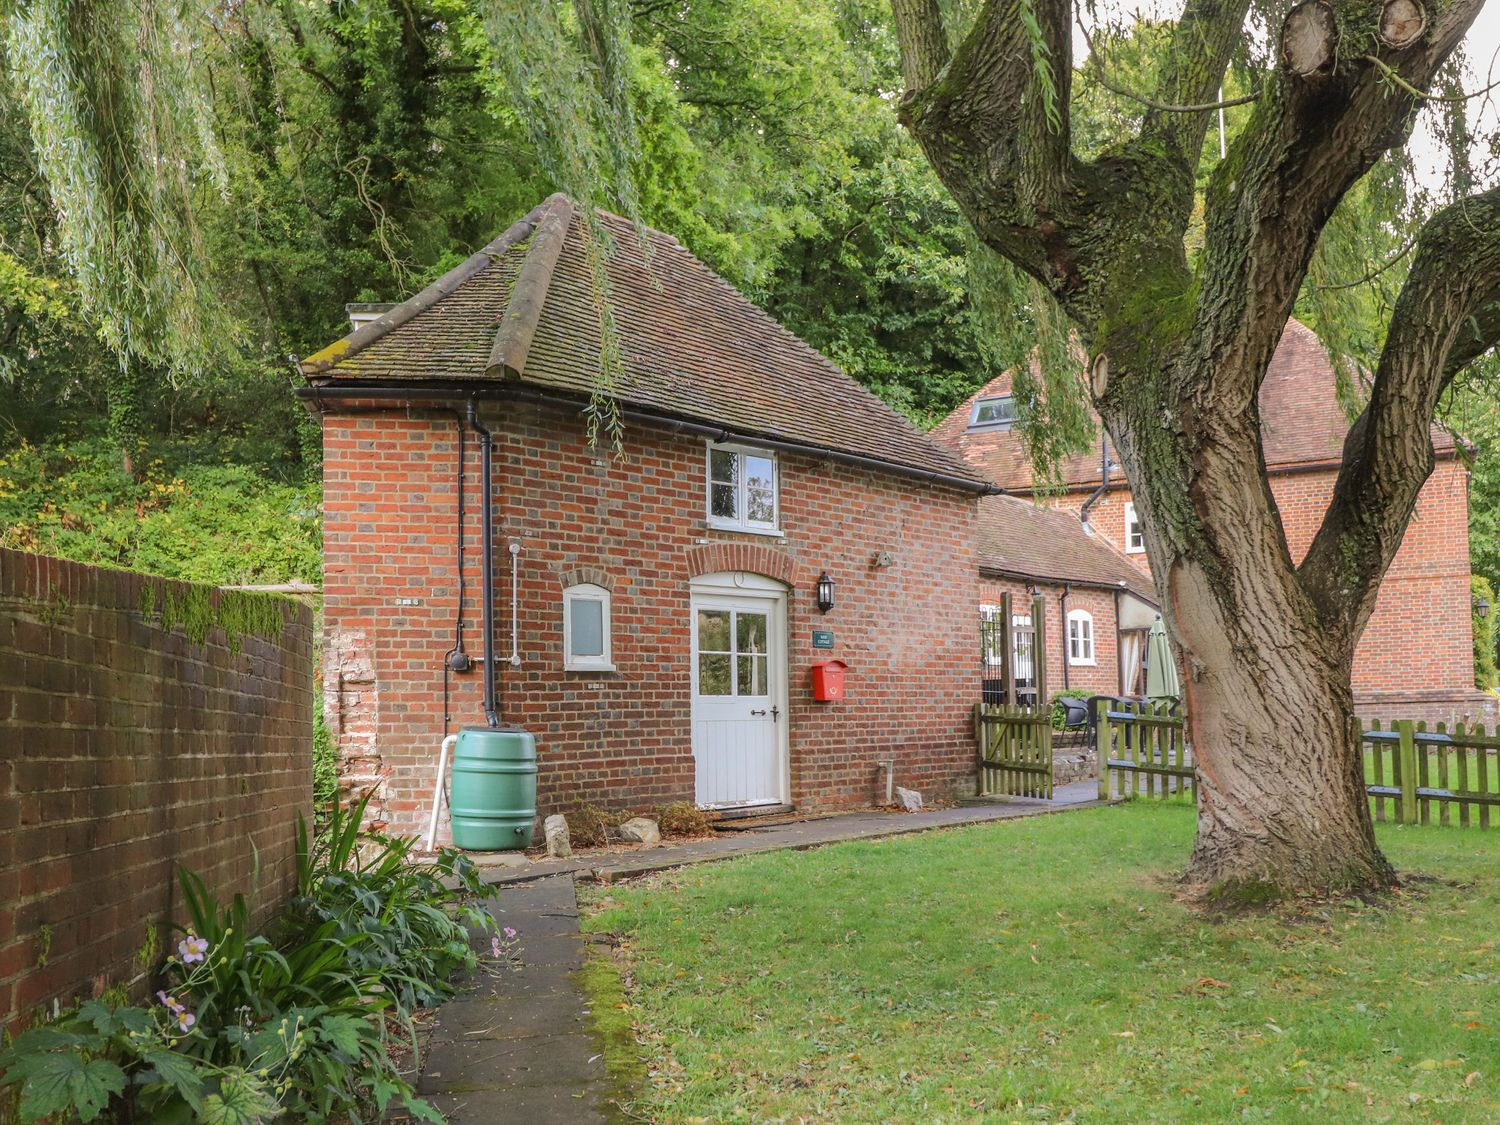 Holiday Cottages in Kent: Weir Cottage, Hollingbourne | Sykes Cottages